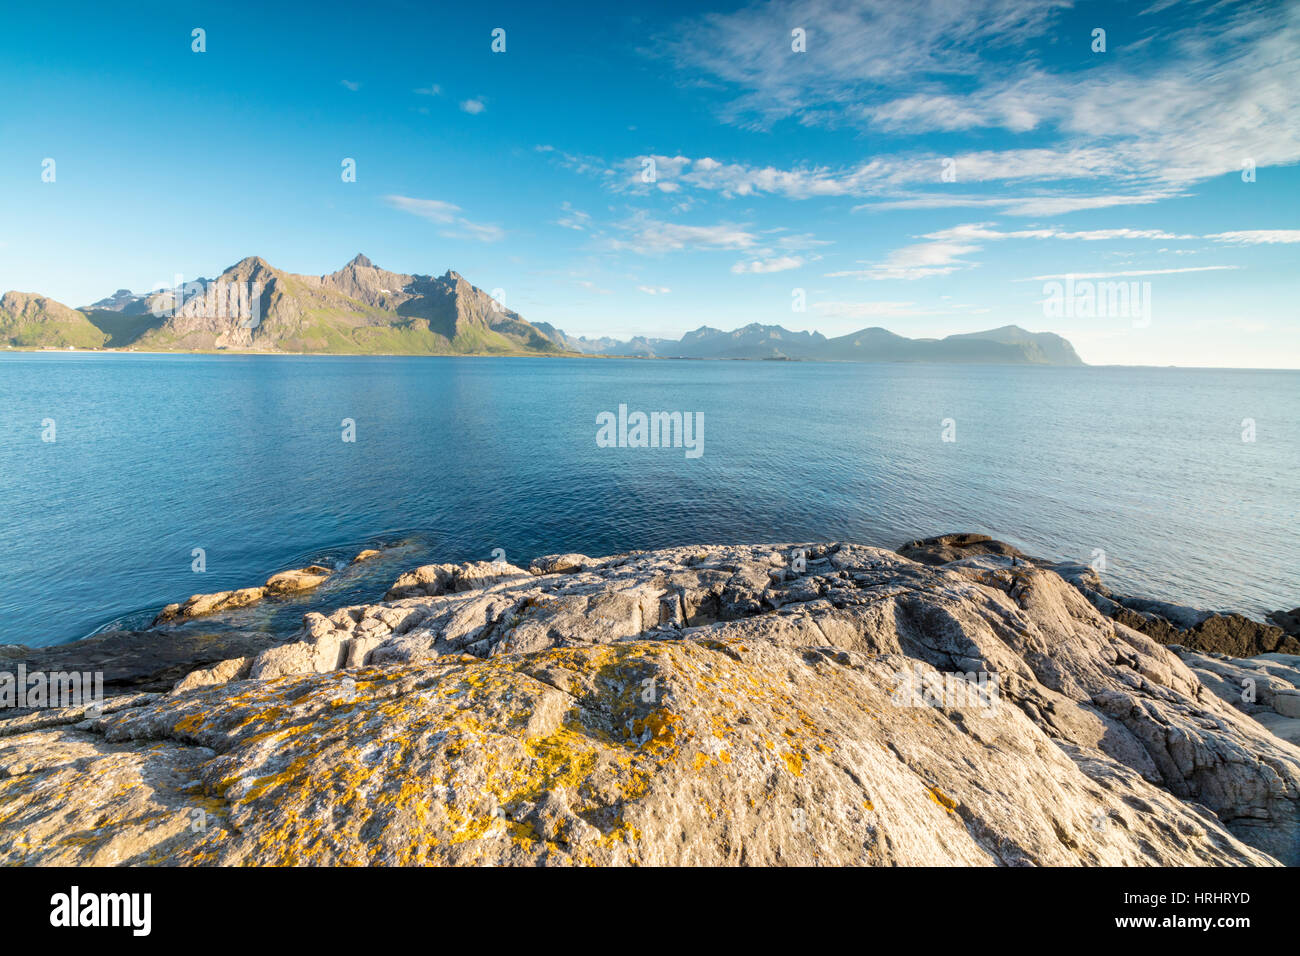 Sun shines on the blue sea and the rocky peaks at night during summer, Vikten, Nord Trondelag, Lofoten, Norway, Stock Photo